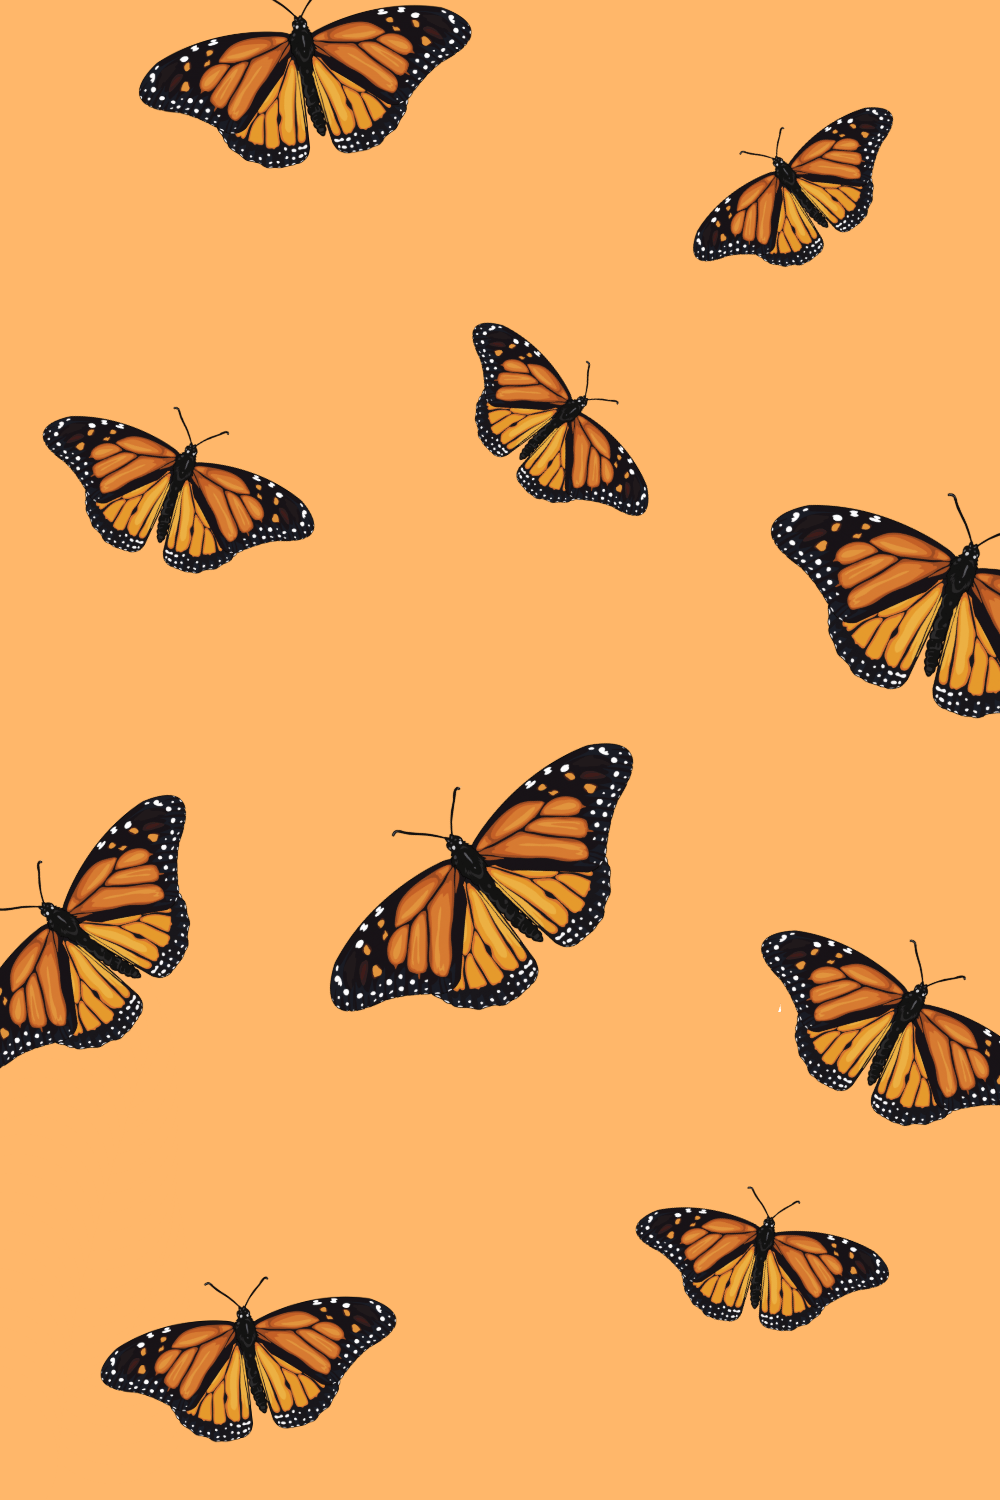 Butterfly Wallpapers, Butterfly Backgrounds... - Desktop Nexus